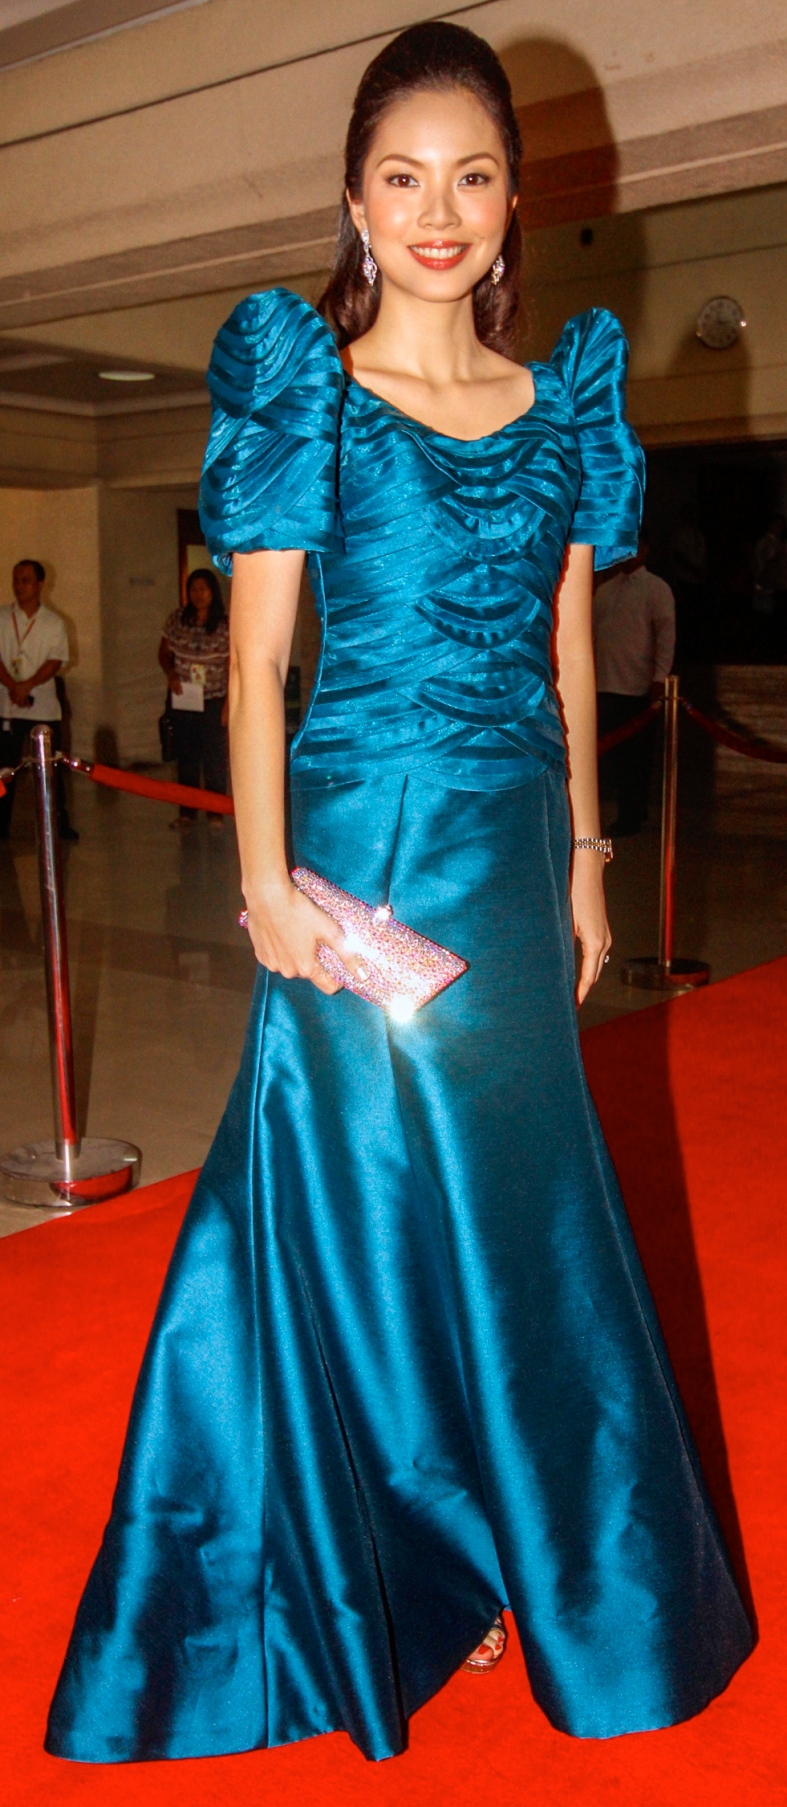 BAMBI Young in Frederick Peralta (Alanah Torralba)